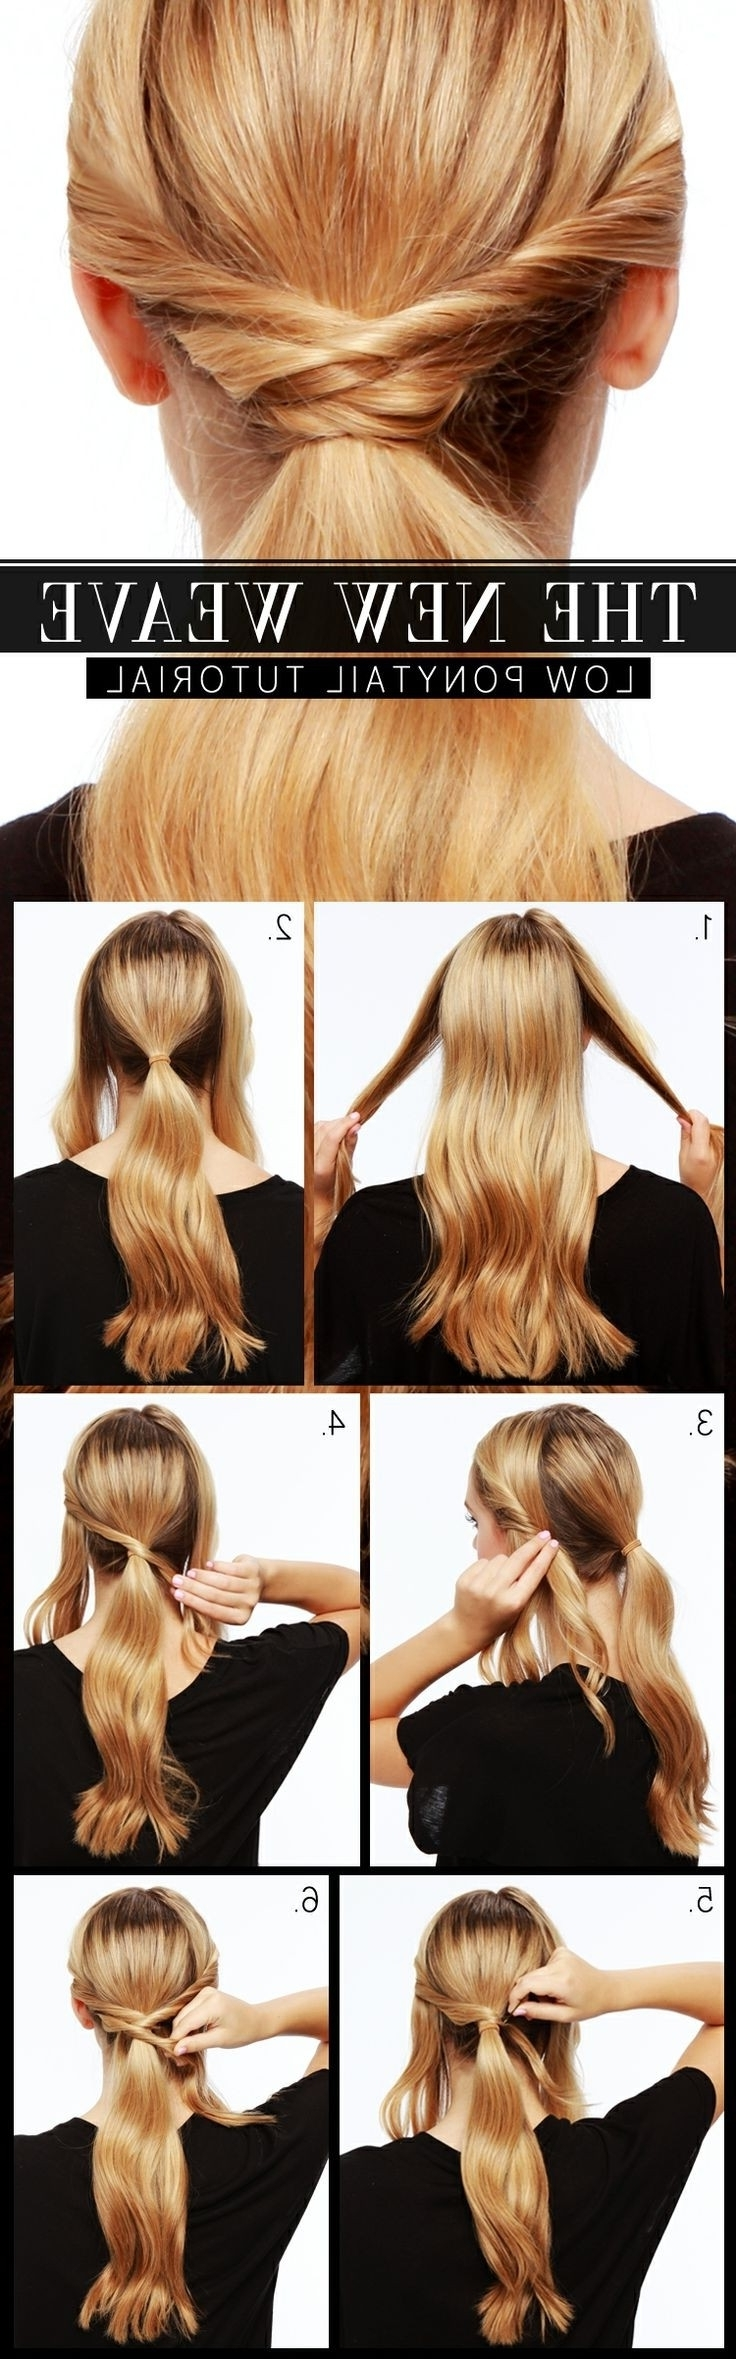 16 Simple And Chic Ponytail Hairstyles – Pretty Designs Pertaining To Newest Two Toned Pony Hairstyles For Fine Hair (View 4 of 20)